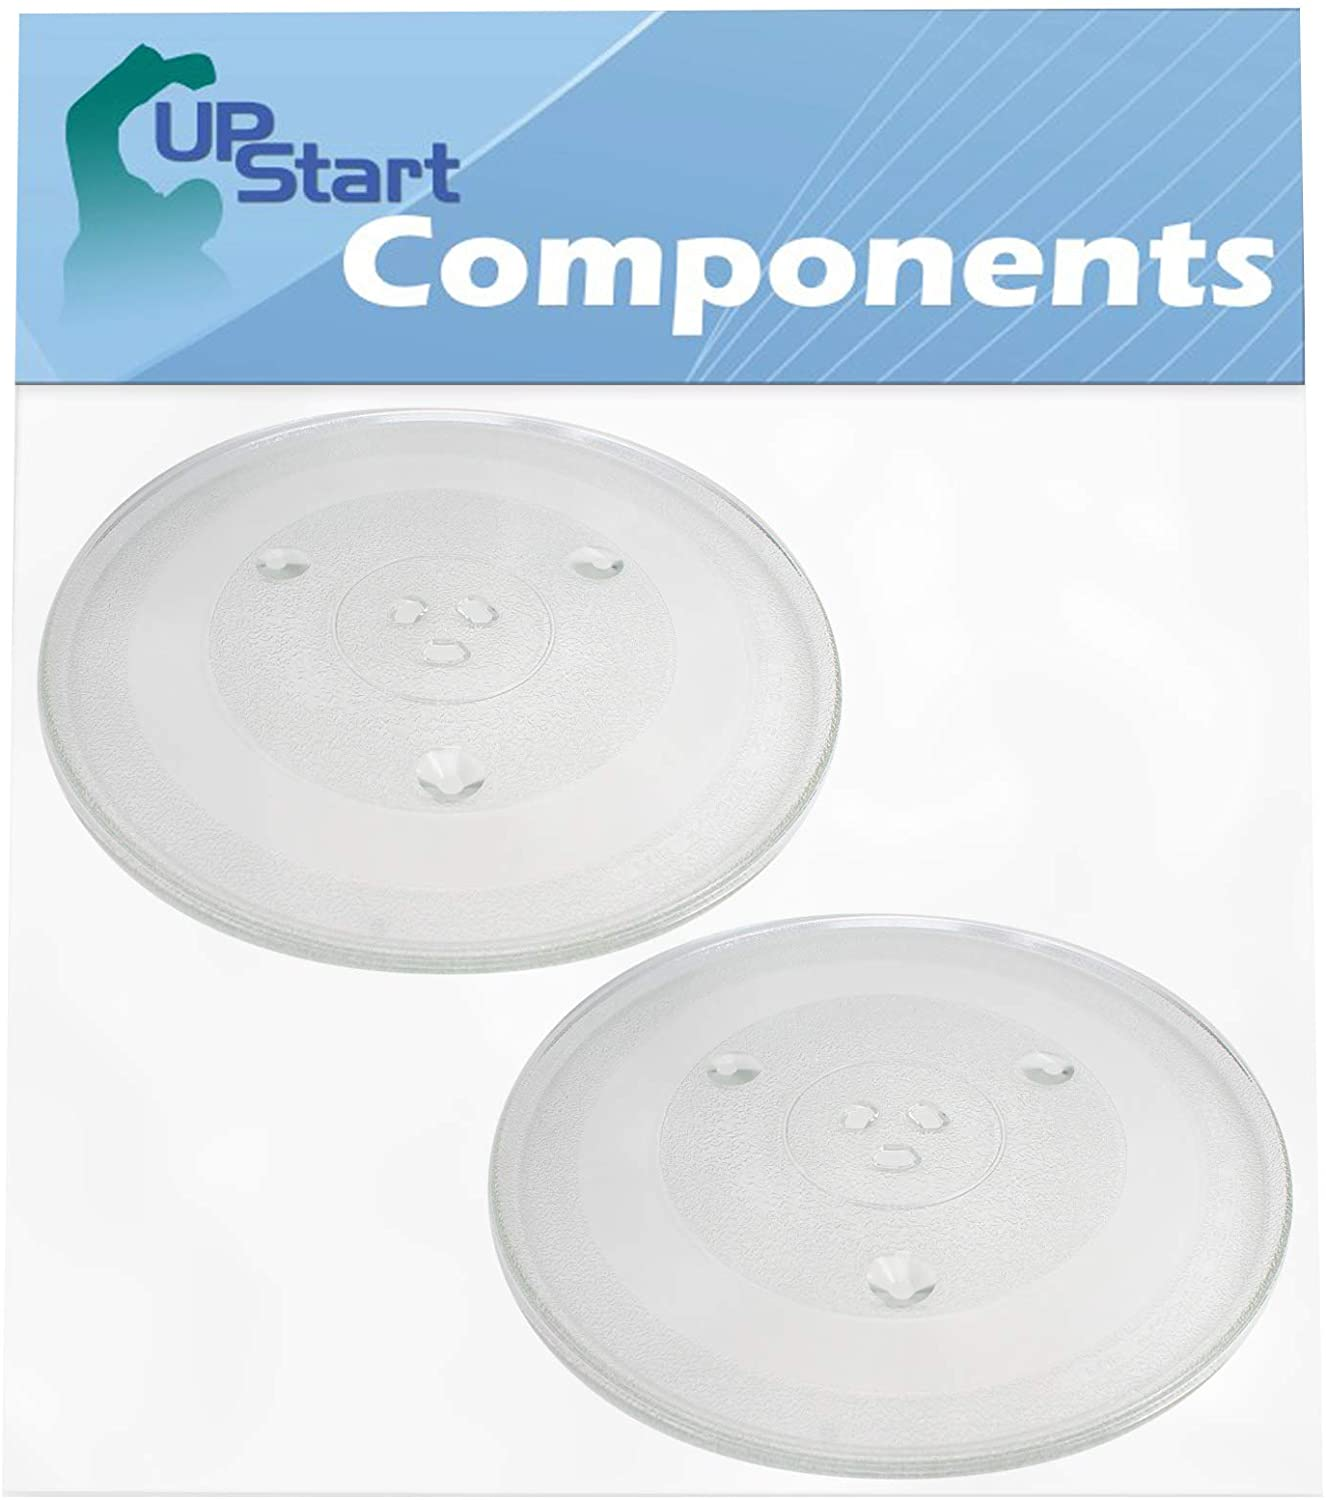 2-Pack P34 Microwave Glass Turntable Plate Replacement for Emerson MW8119SBM - Compatible with P34 12 3/8 Inch Glass Tray